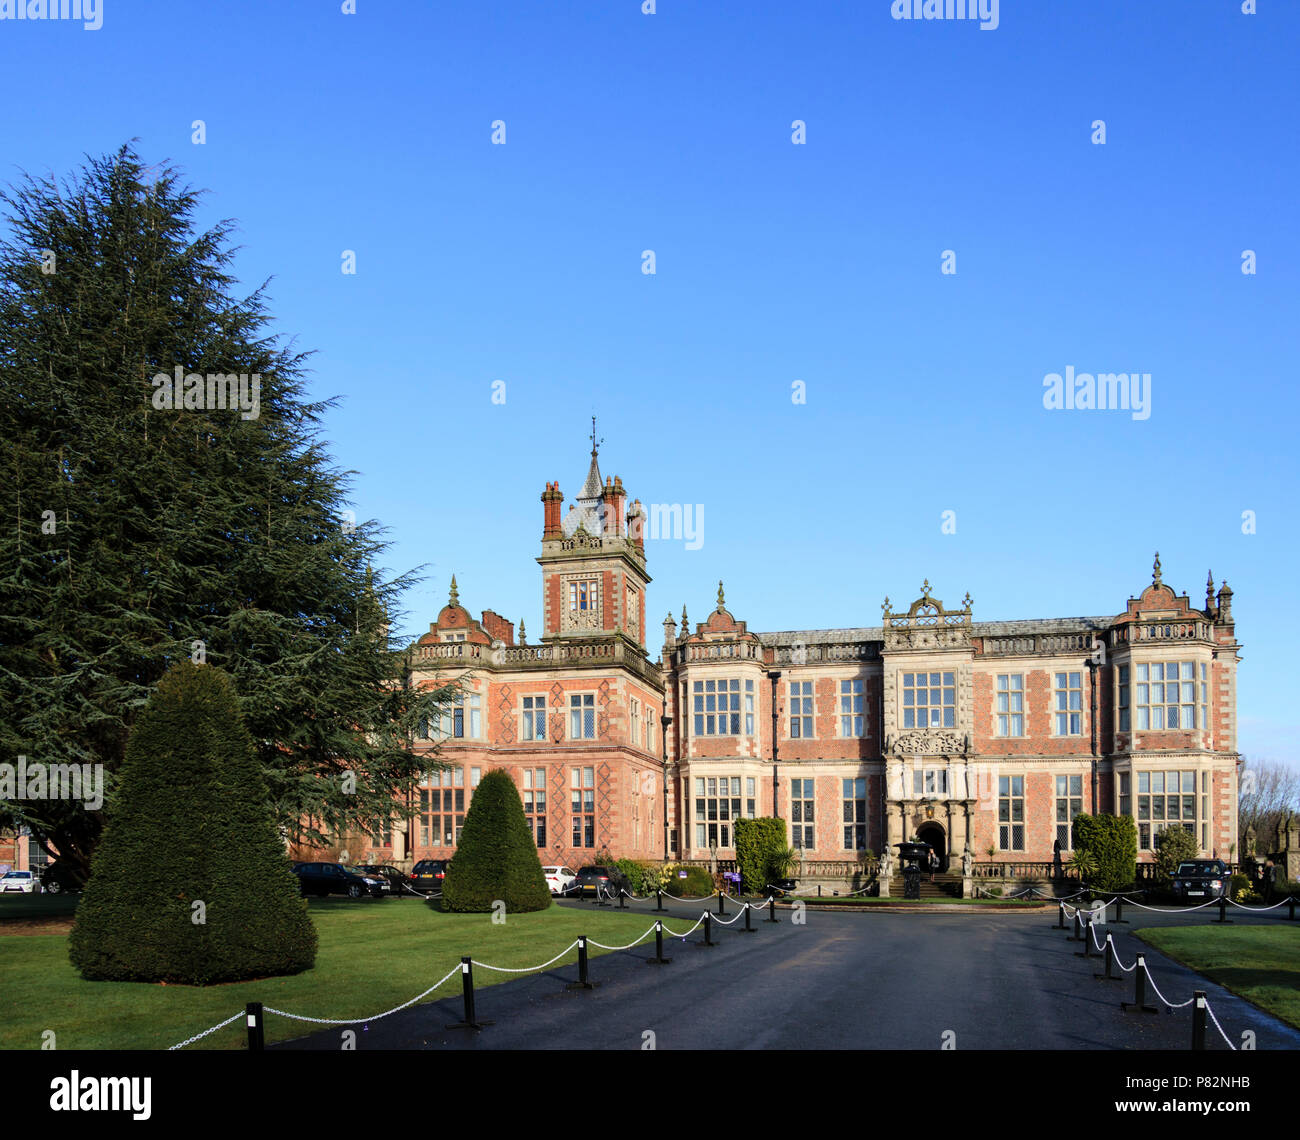 Crewe Hall, near Crewe, Cheshire, UK, a restored Jacobean mansion now a hotel and conference centre. Popular wedding venue. - Stock Image